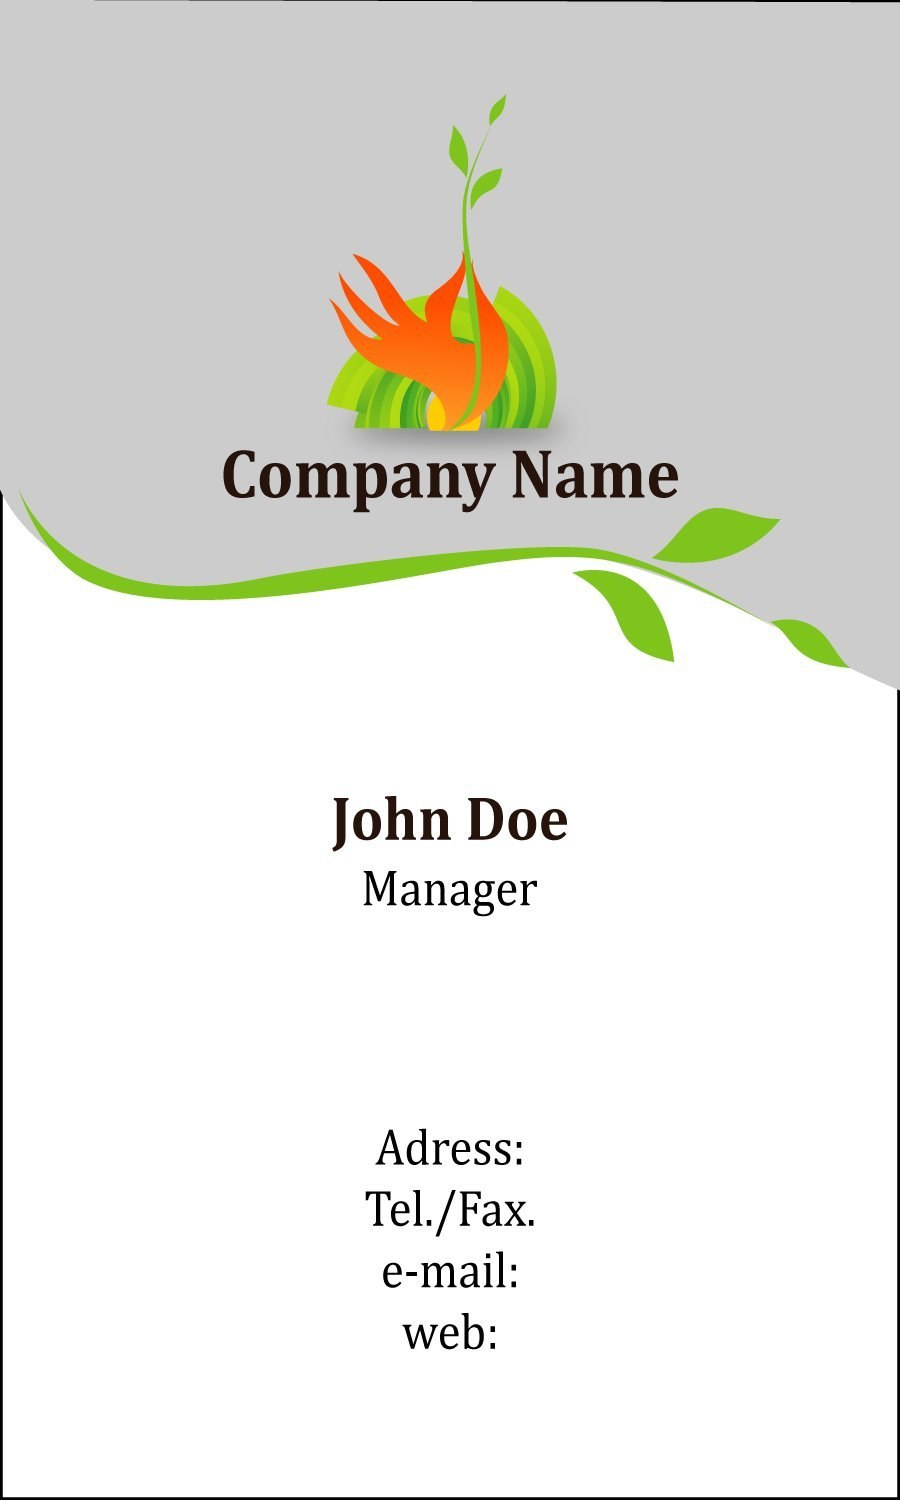 Free Business Card Templates ᐅ Template Lab Inside Call Card Templates